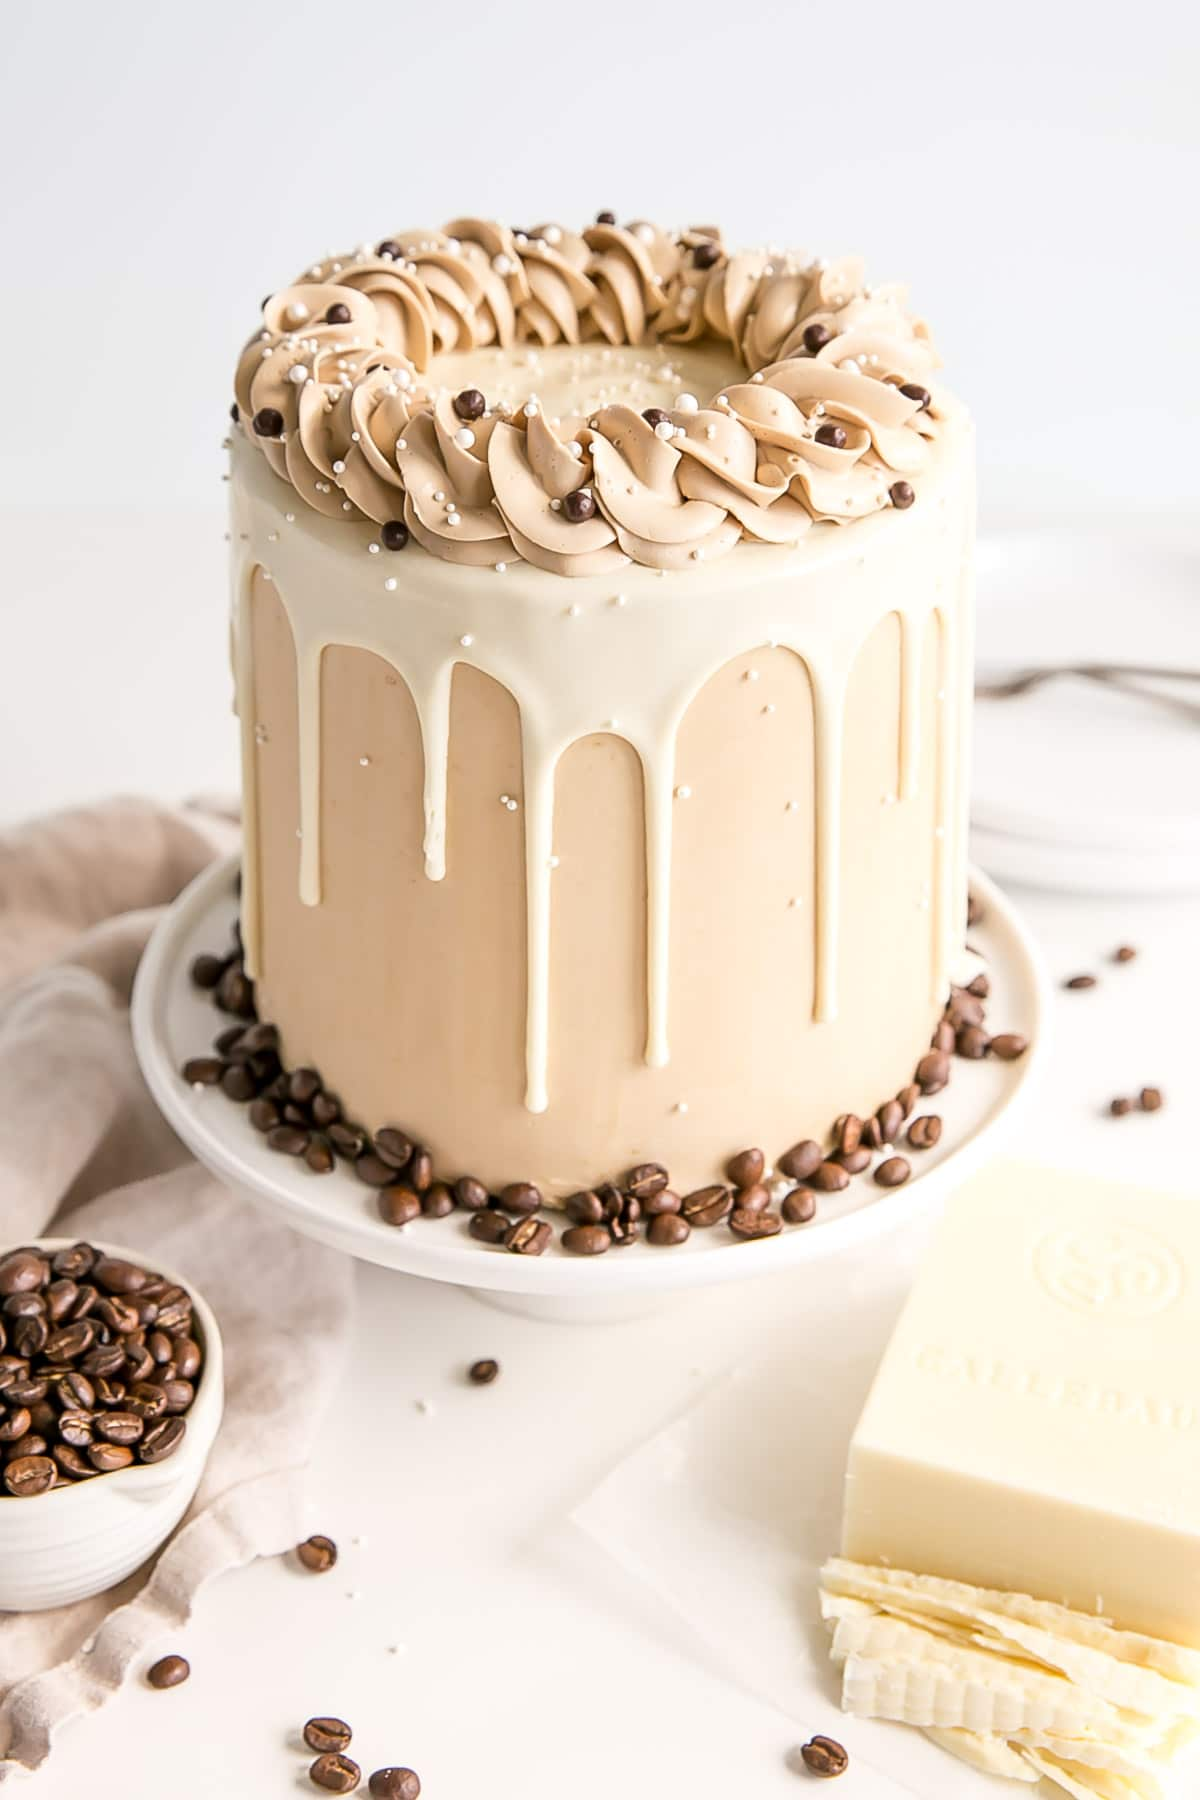 Angled shot of the cake with chopped white chocolate and coffee beans in the foreground.